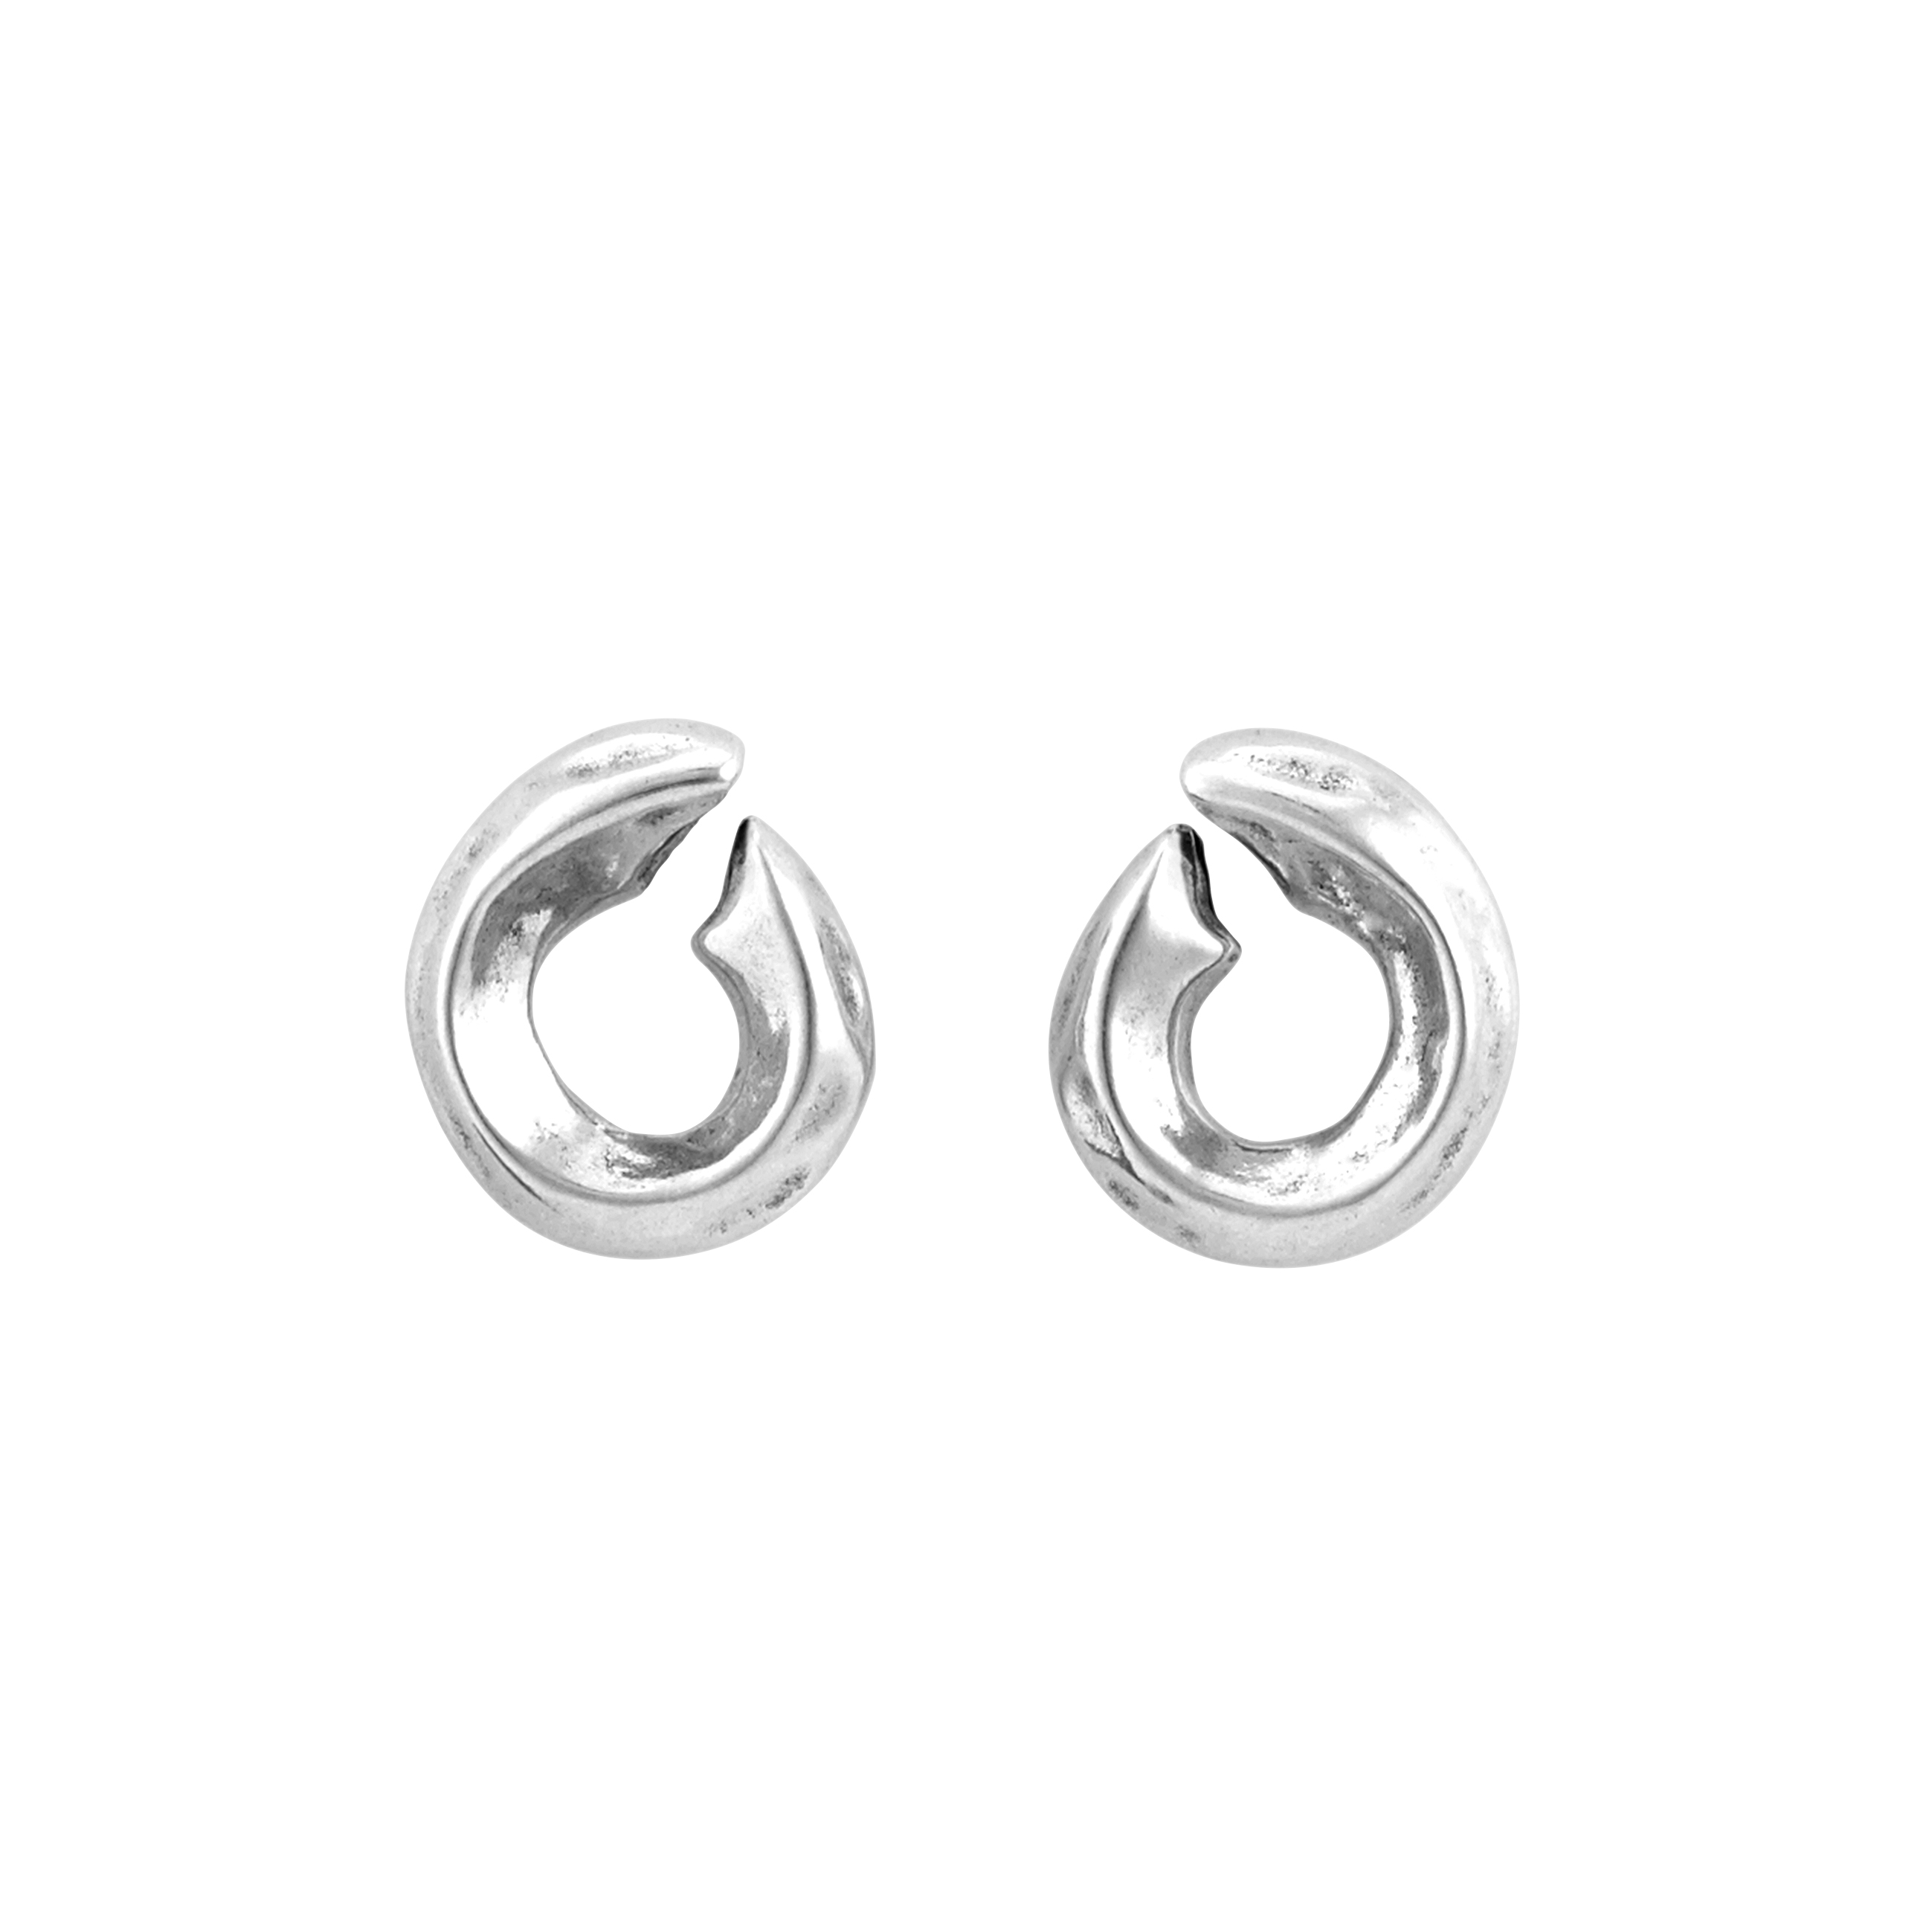 Uno De 50, Earrings, New Collection, Love, Drakes, Jewellers, Plymouth